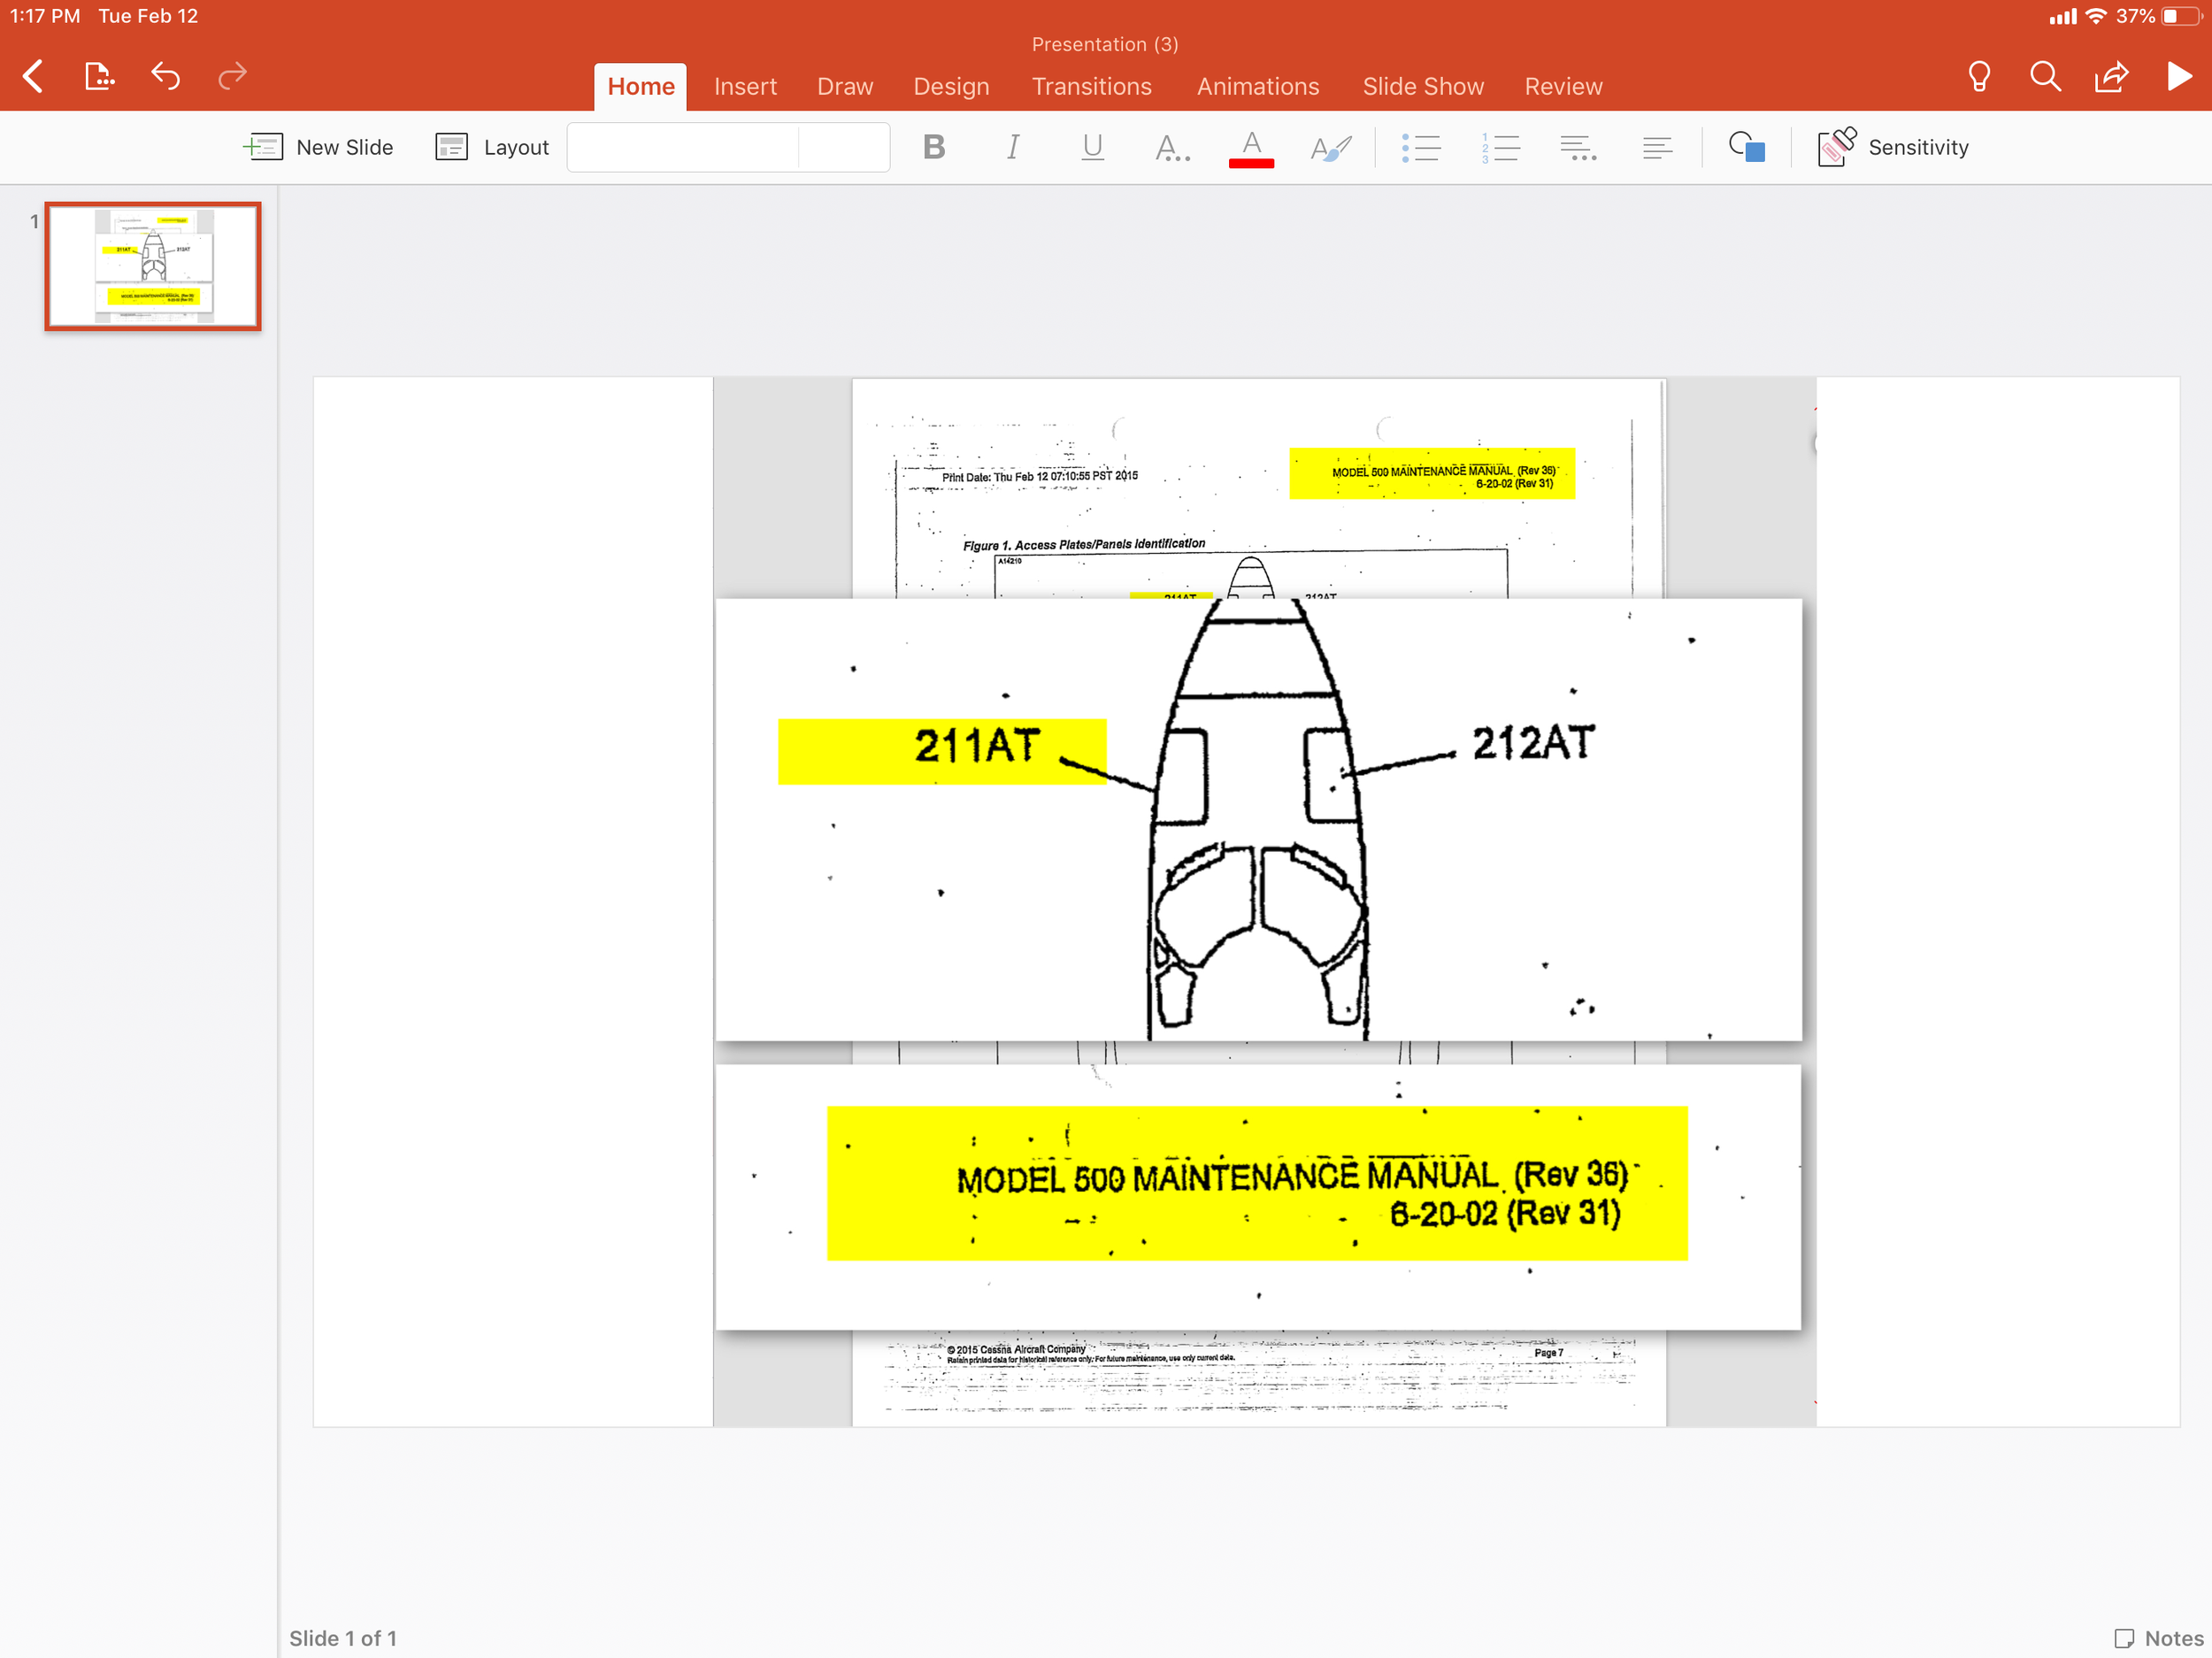 The image you created in TrialPad will now embed on your PowerPoint slide. - You are ready to present your treated document in PowerPoint.